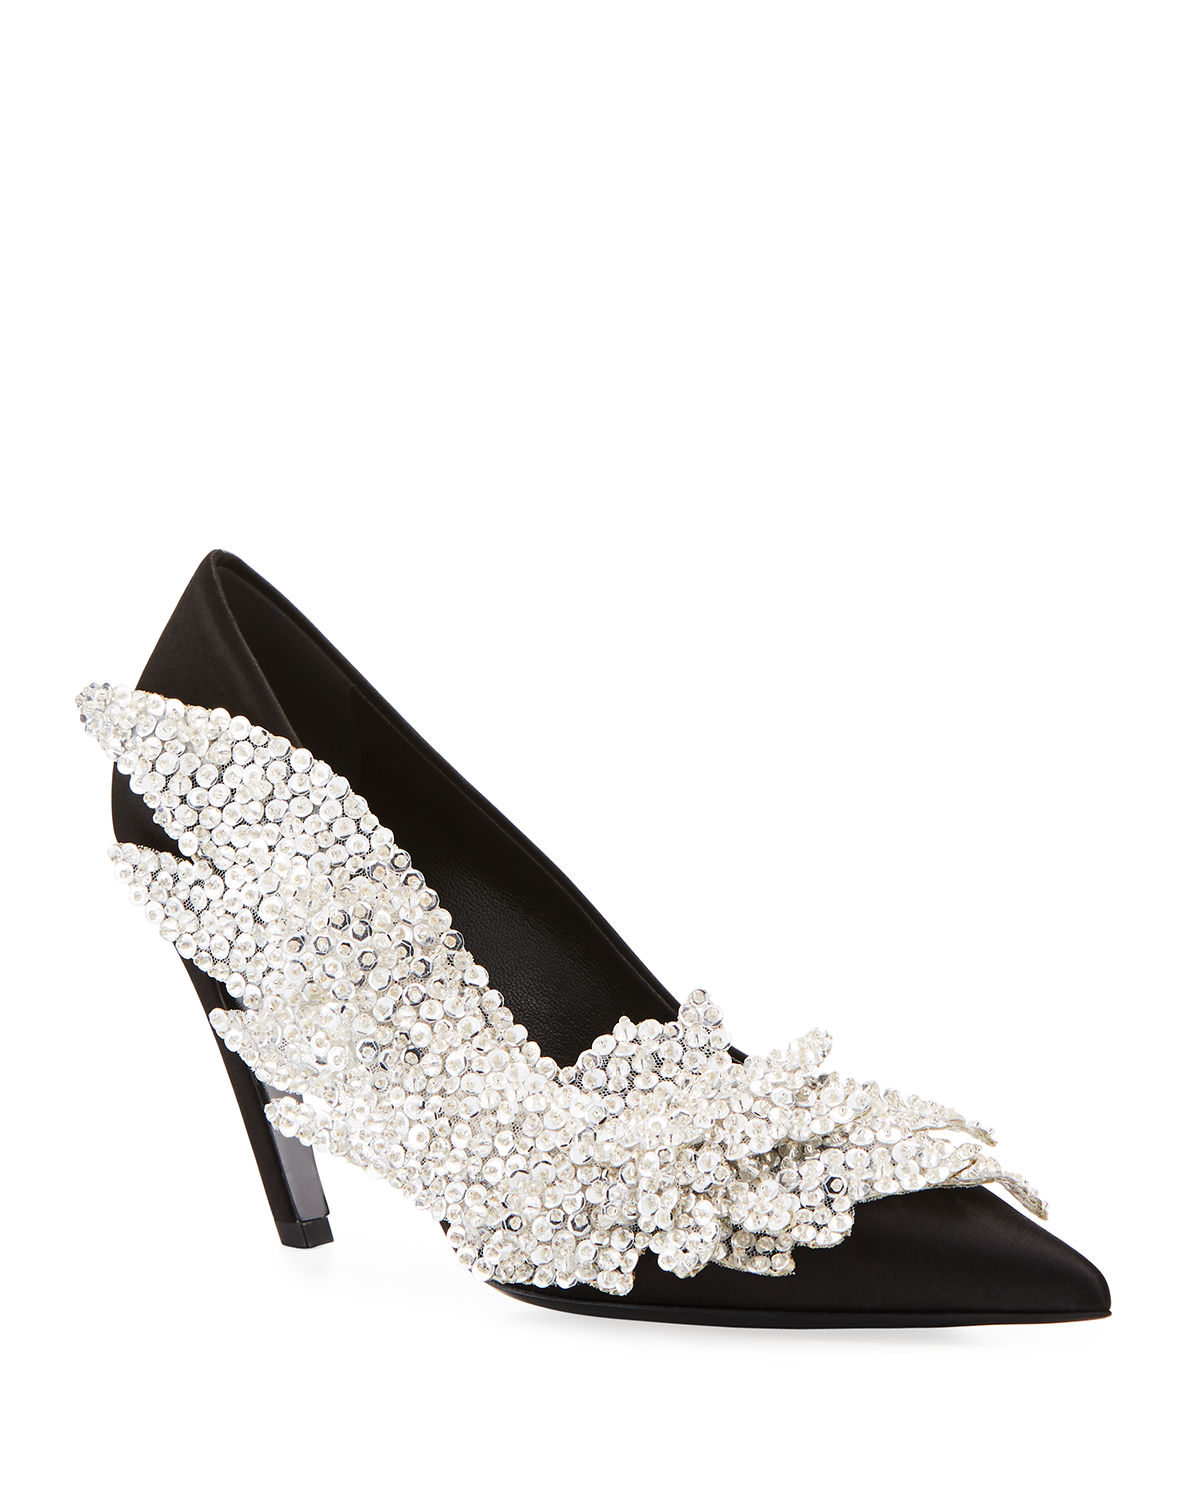 5a64a05d1402aa Balenciaga Embroidered Talon Slash Pumps